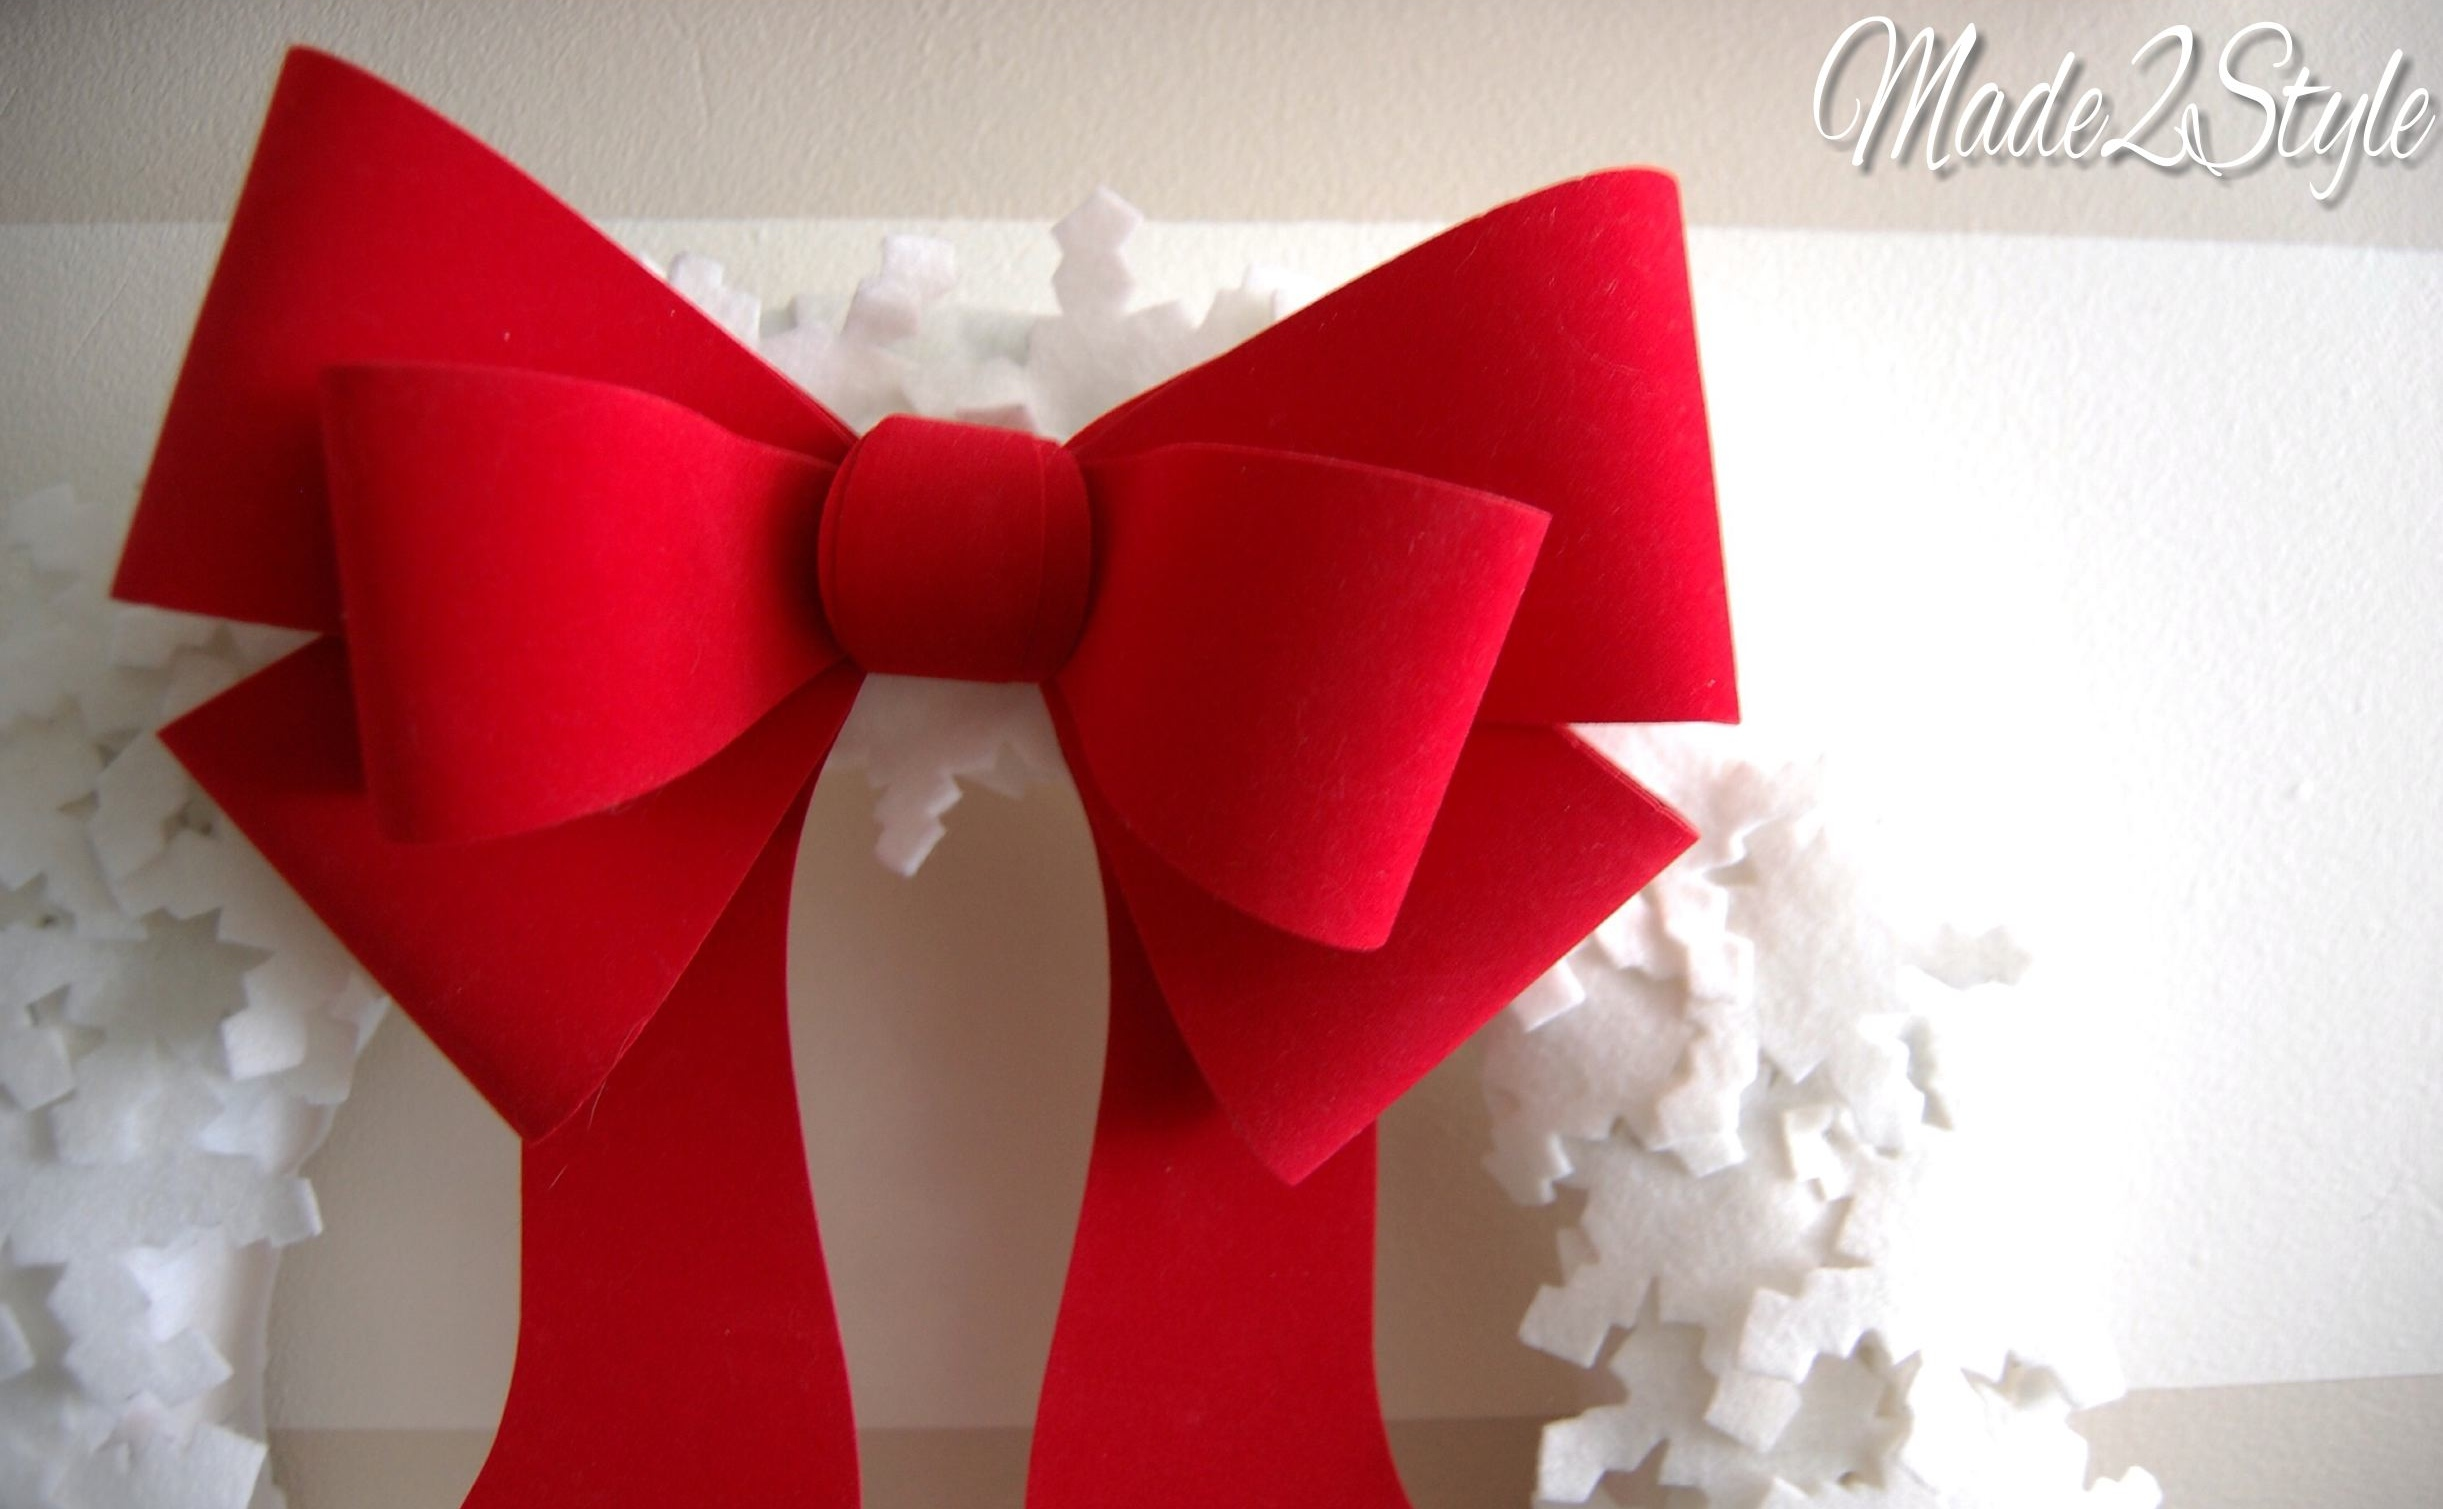 while the red bow is quite festive once the holidays are over im planning on taking it out and replacing it with something a little less christmas and - How To Make A Christmas Bow For A Wreath